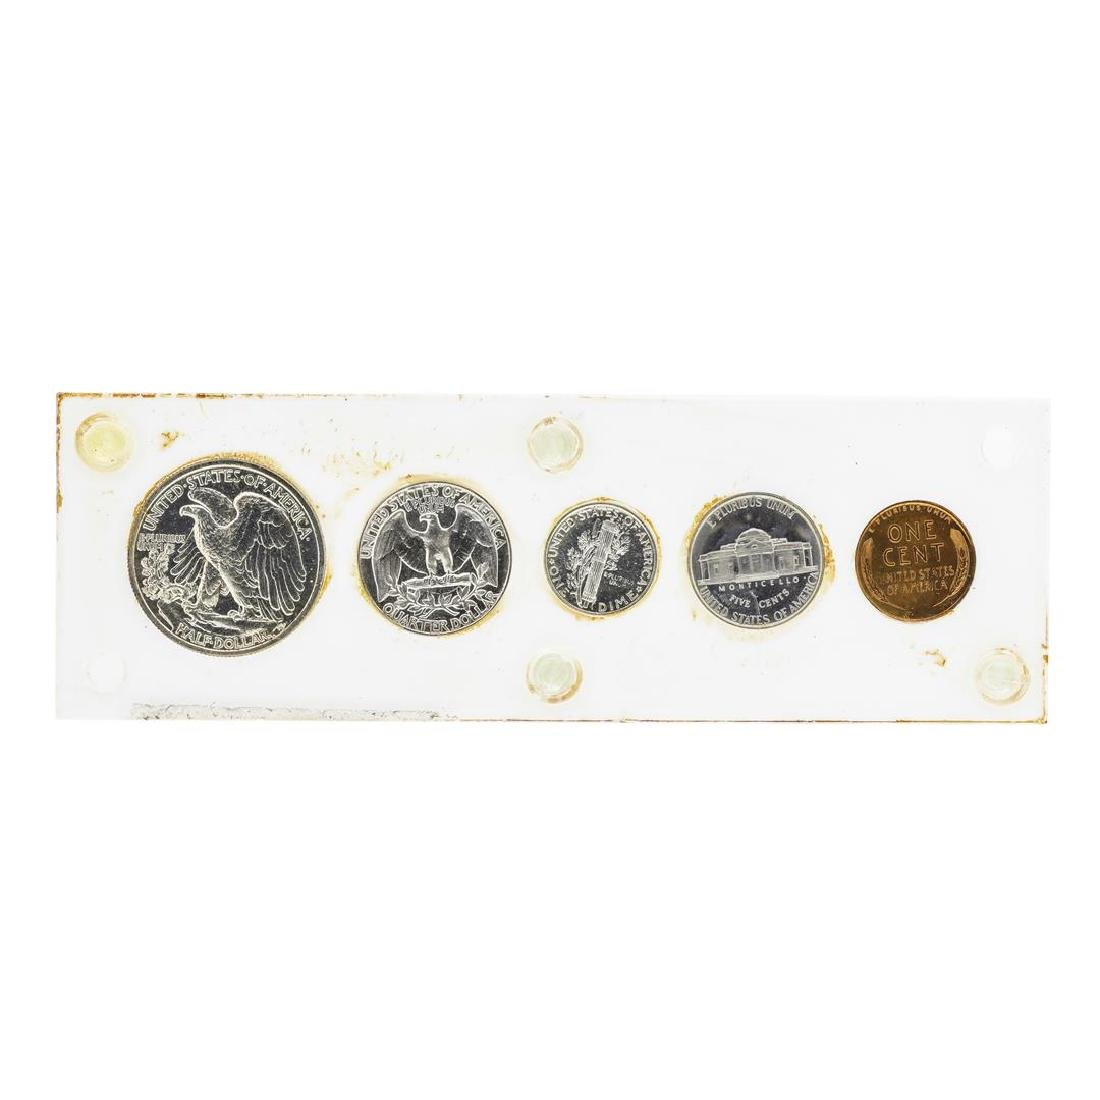 1942 (5) Coin Proof Set - 2